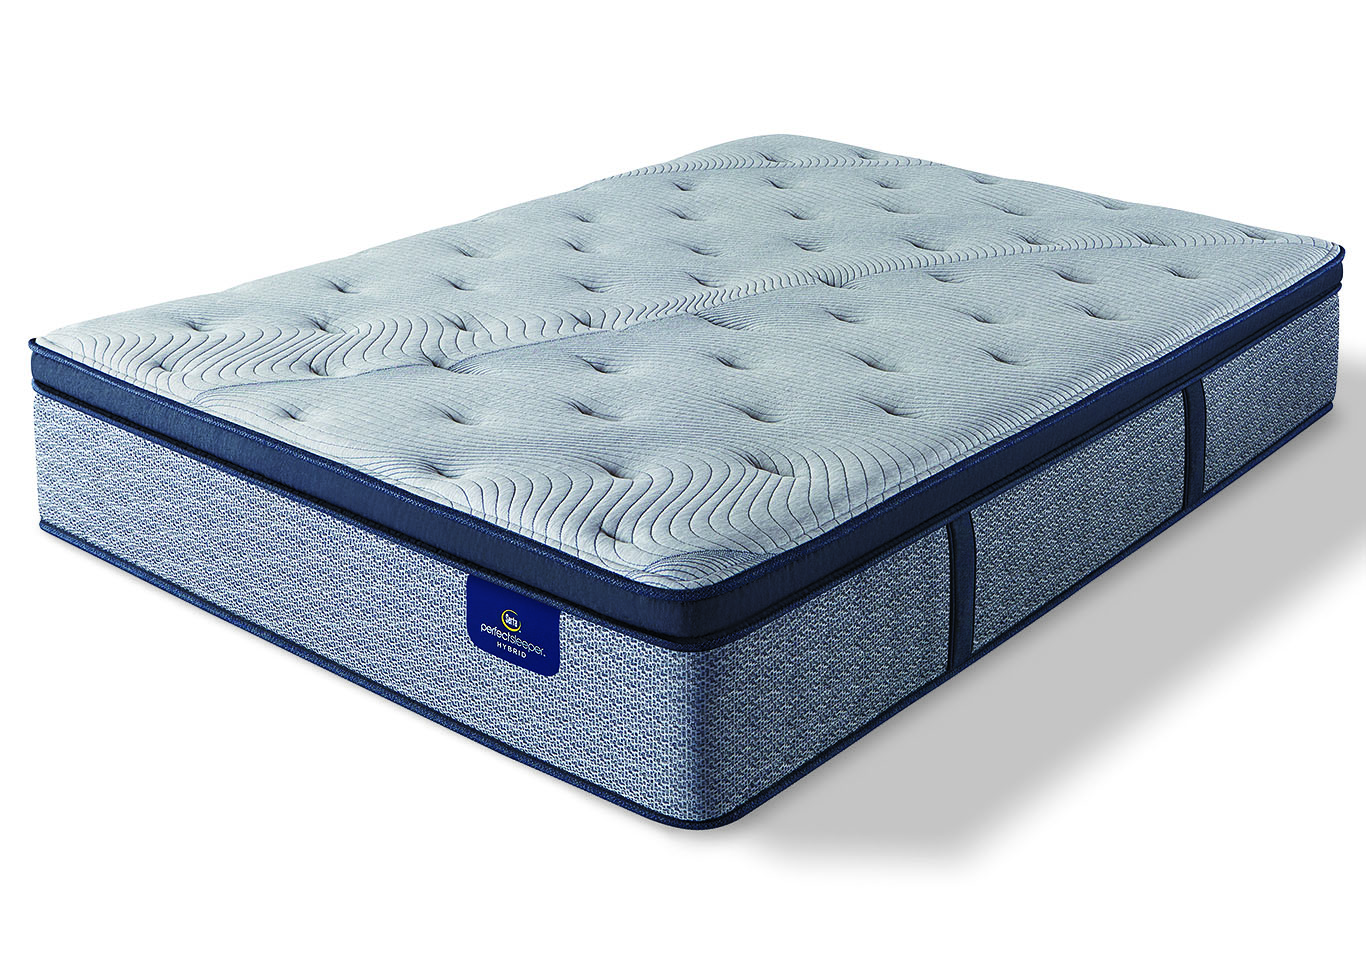 Standale II Pillow Top Plush King Mattress,Huffman Koos